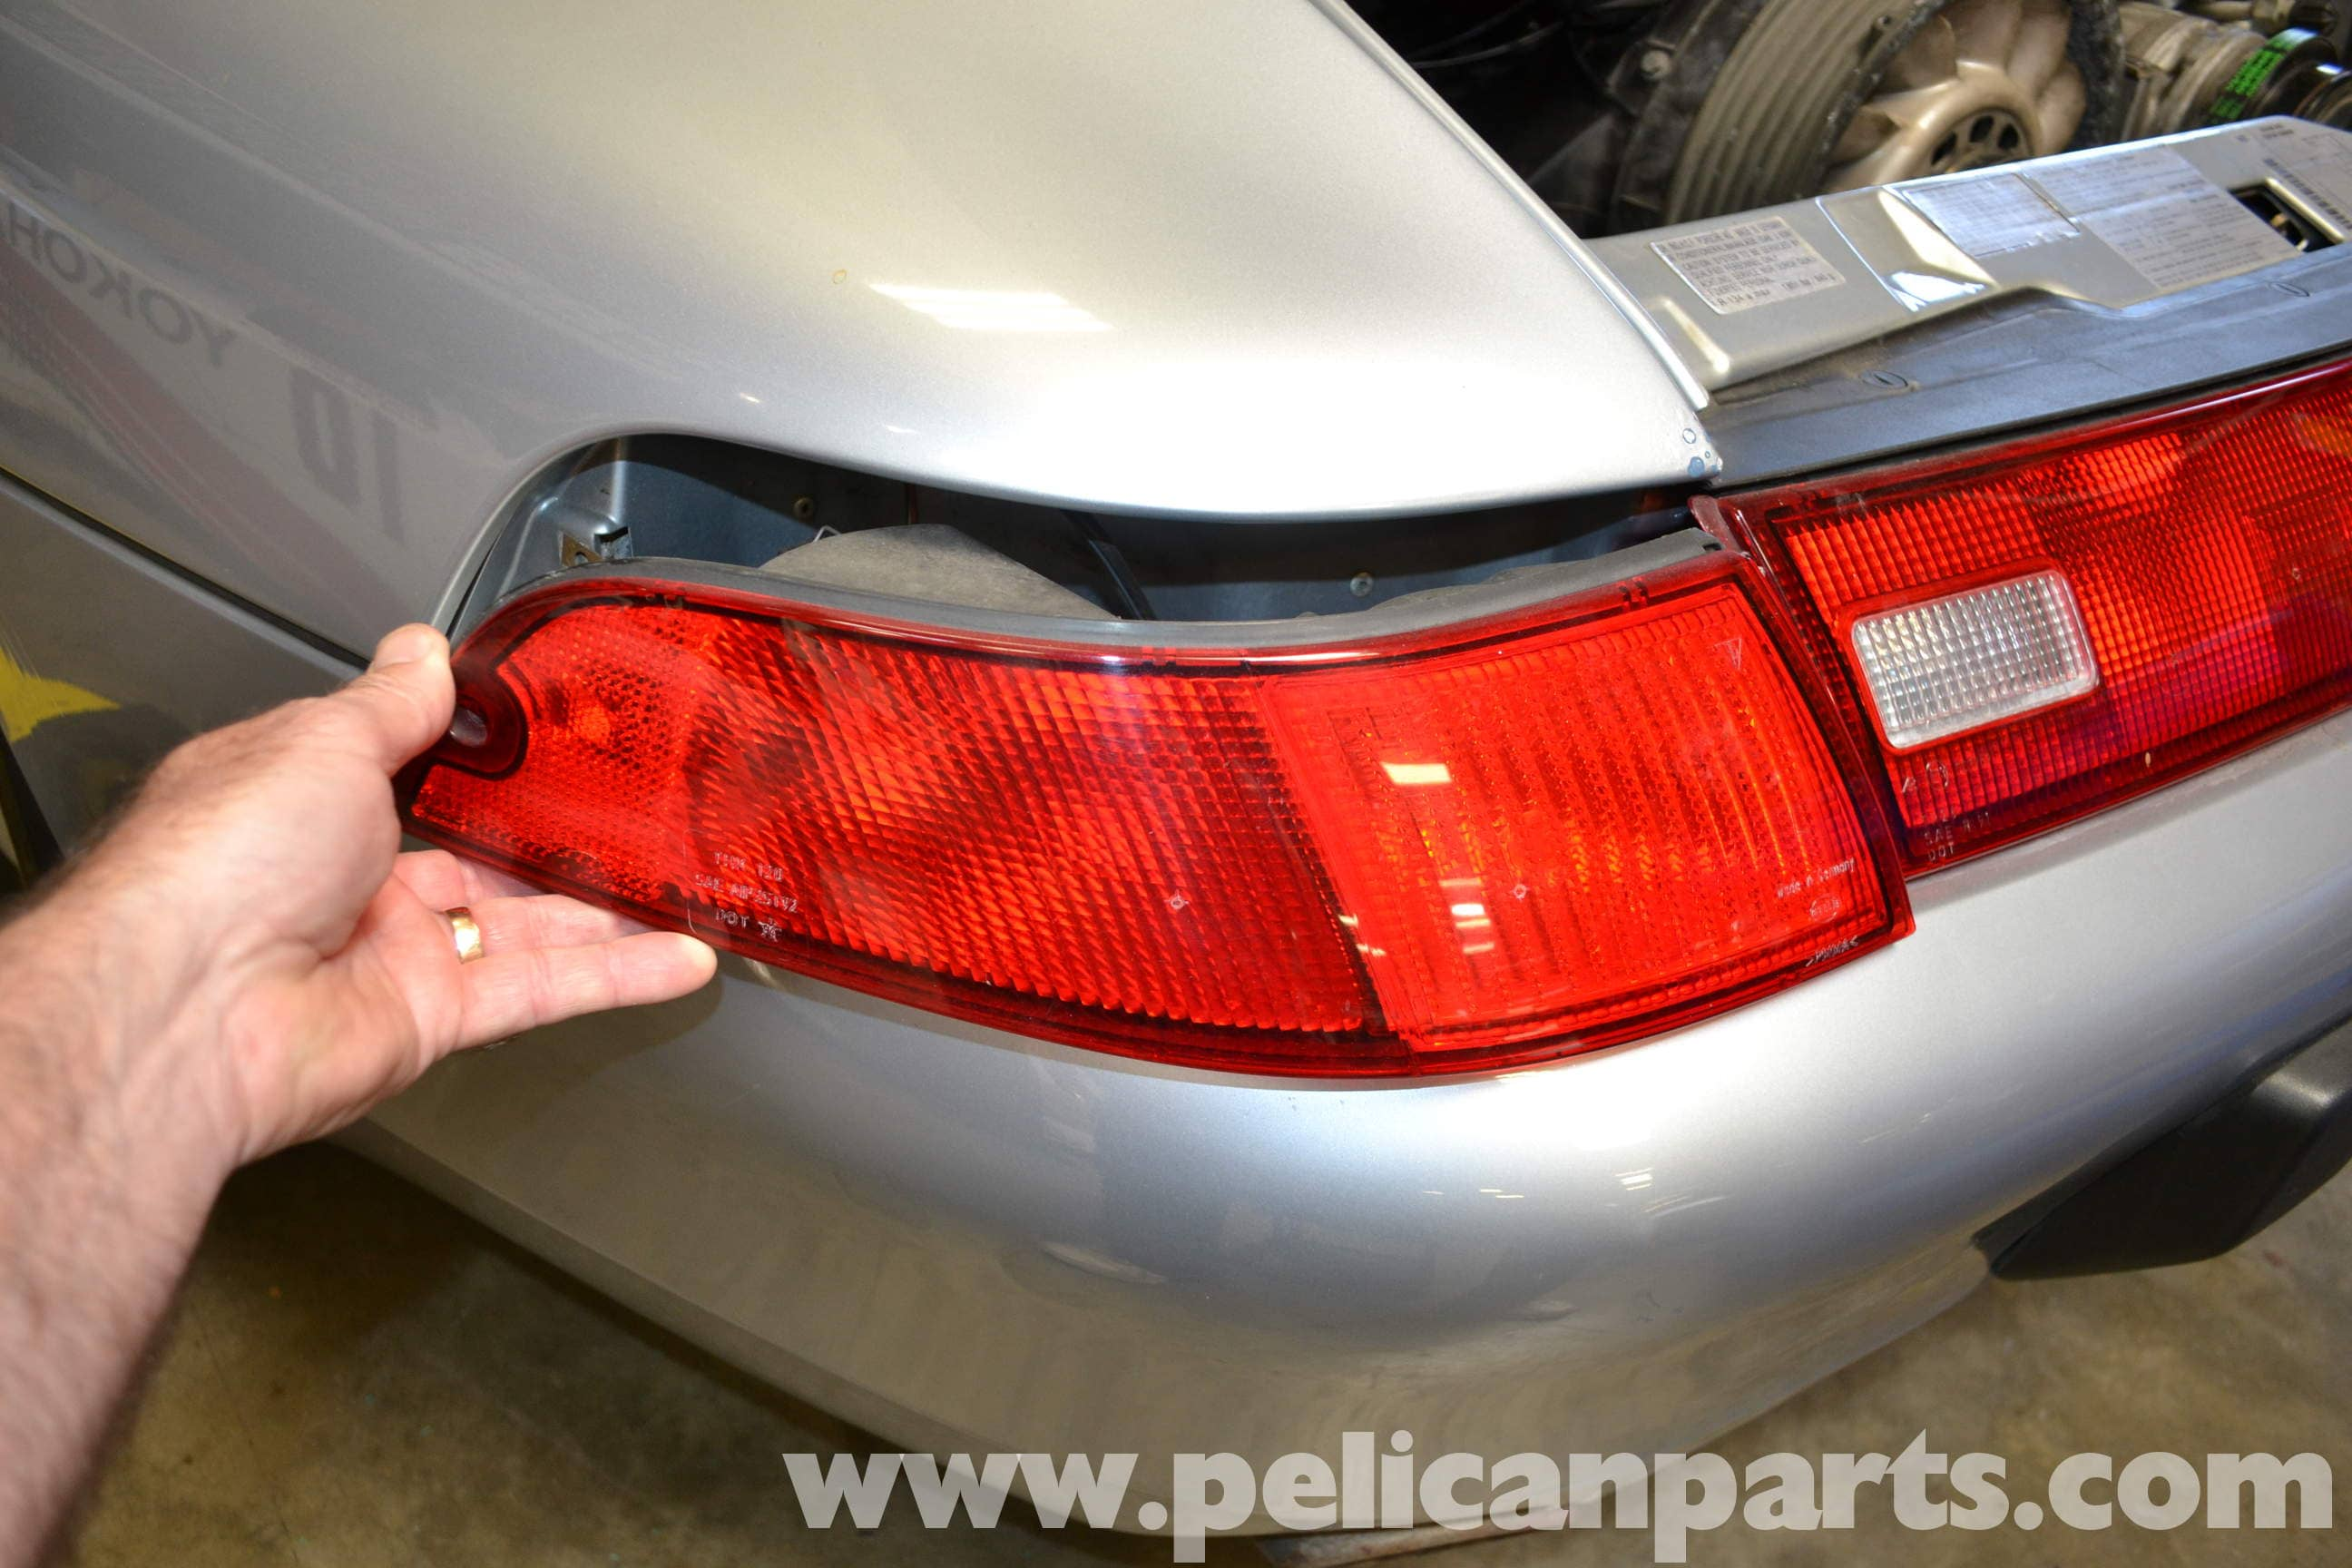 Pelican Technical Article - Porsche 993 - Taillight Bulb or Assembly ...